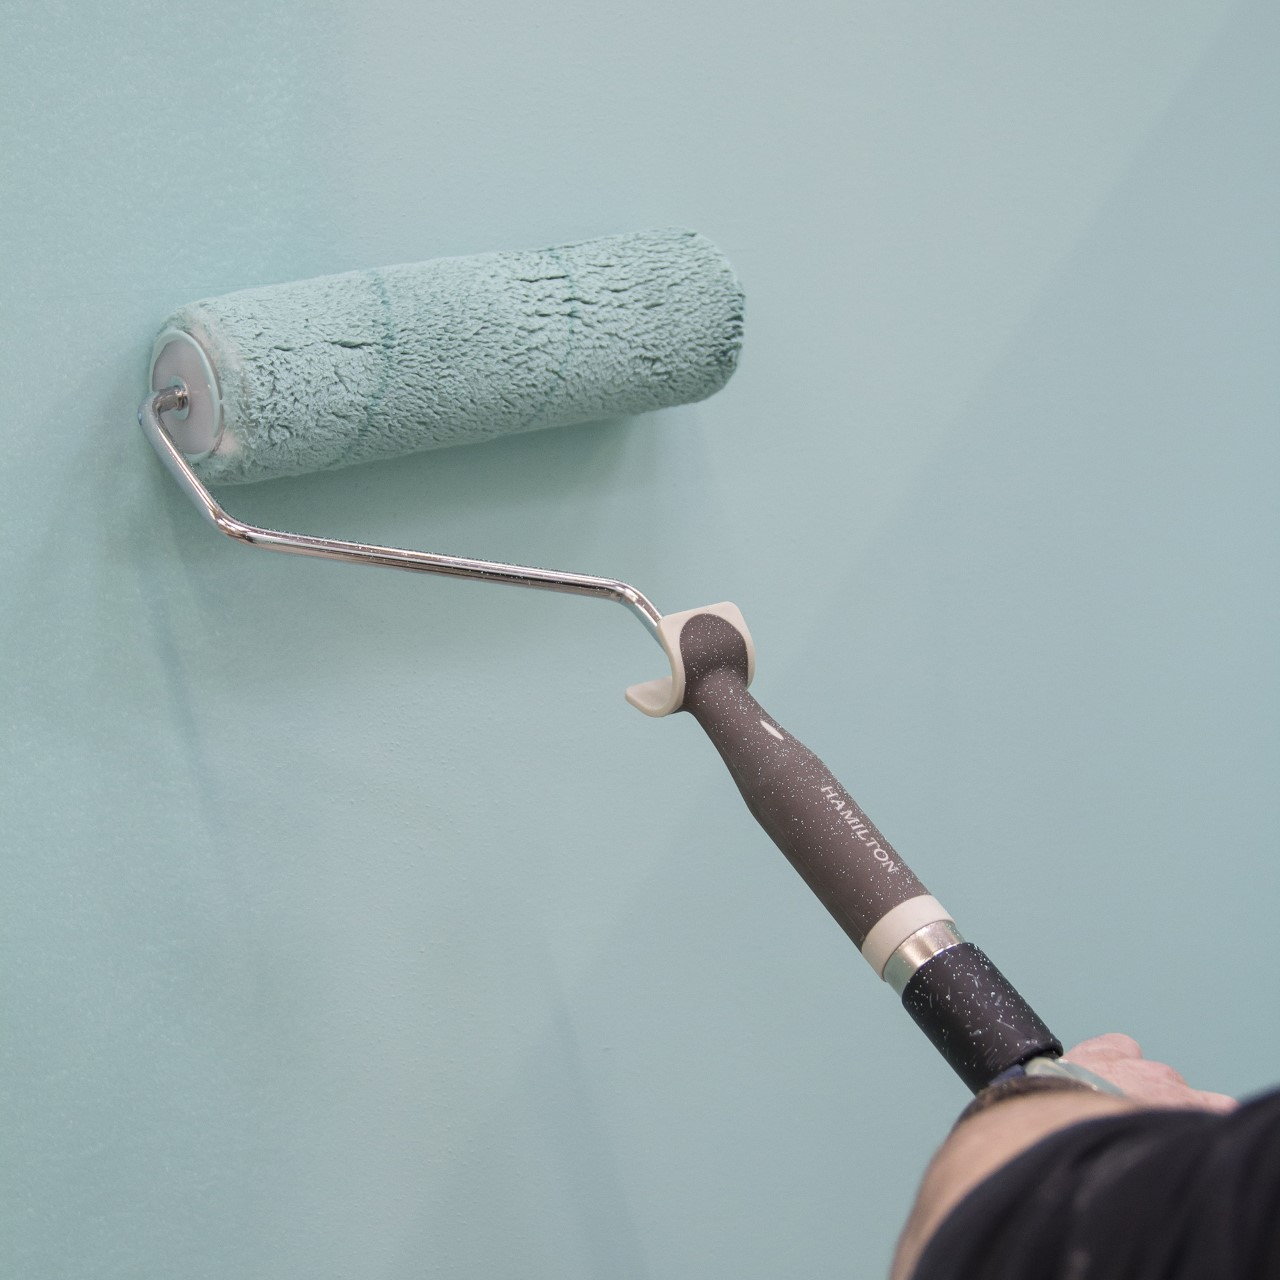 Roll on with Hamilton - quality decorating tools and the best paint roller on the market